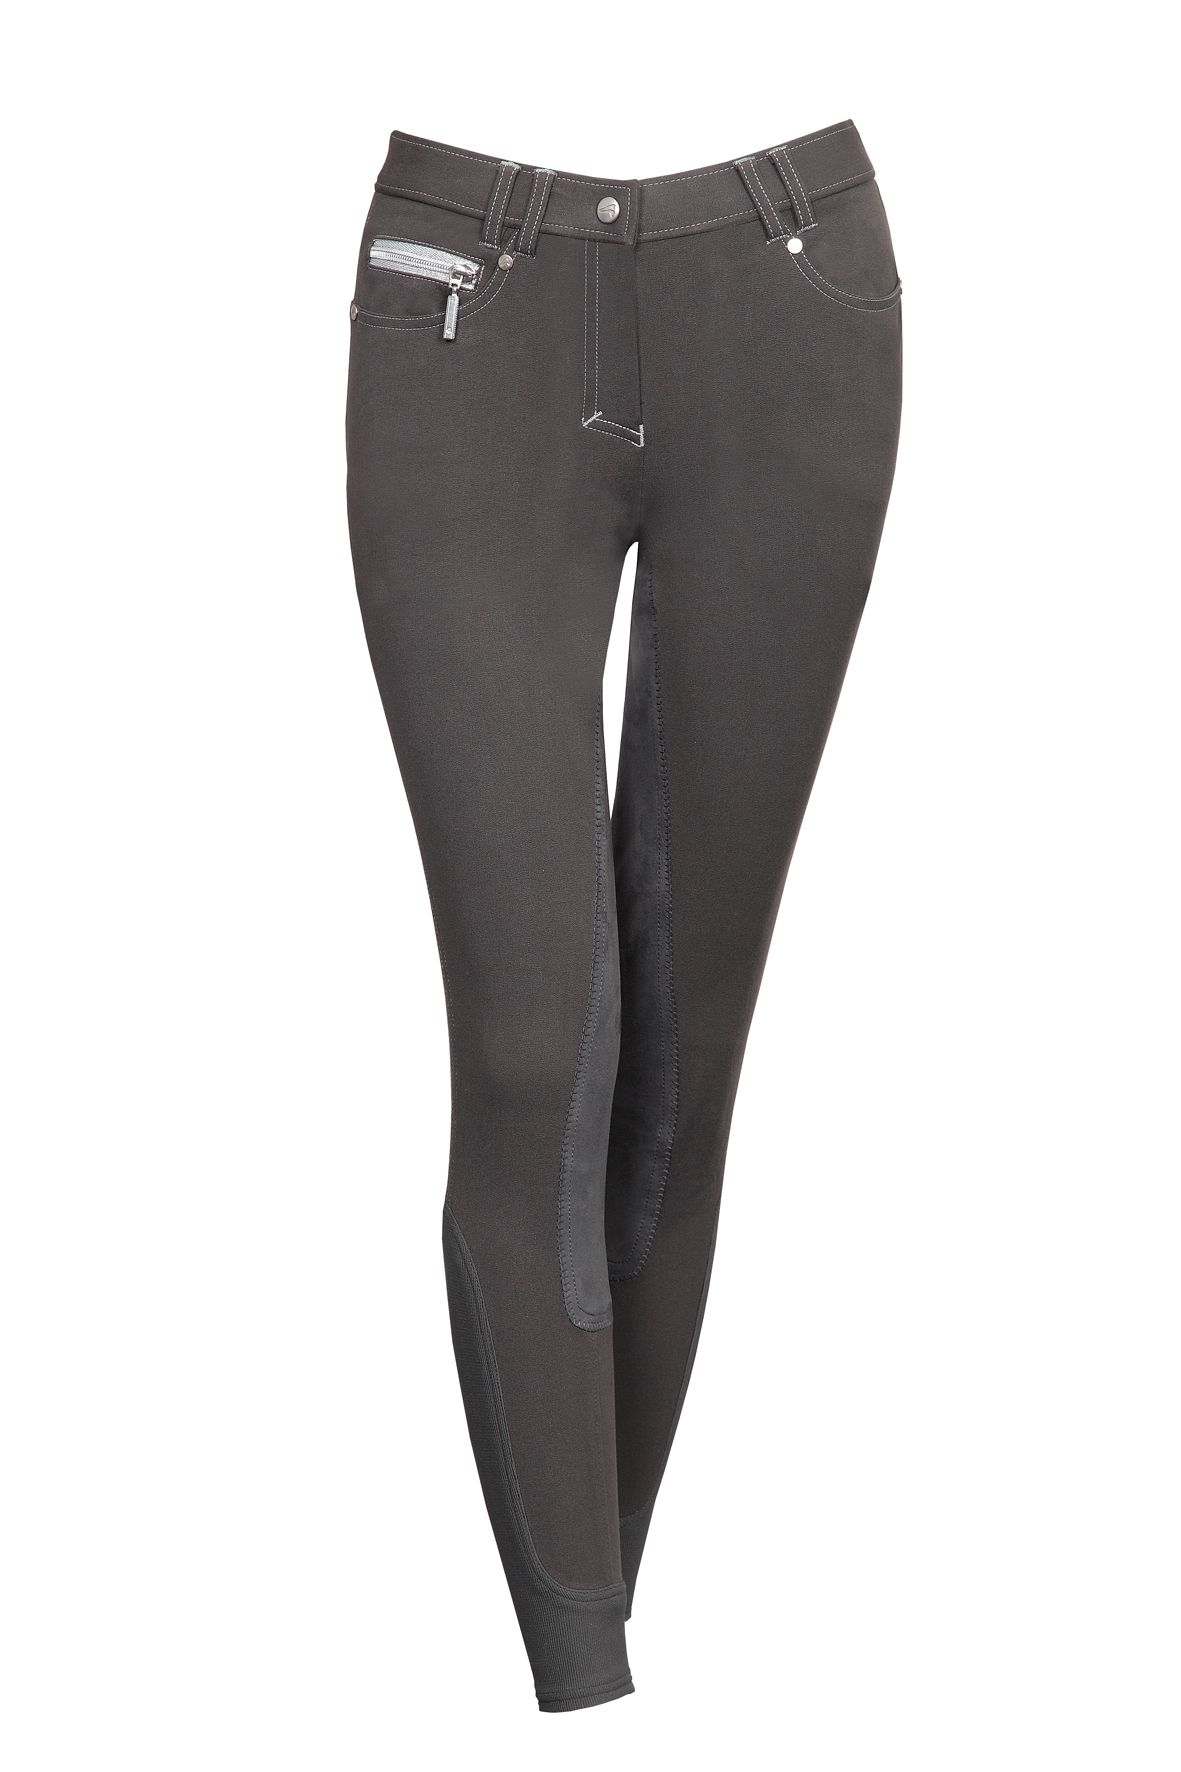 Eurostar Ladies Lorena Full Seat Riding Breeches